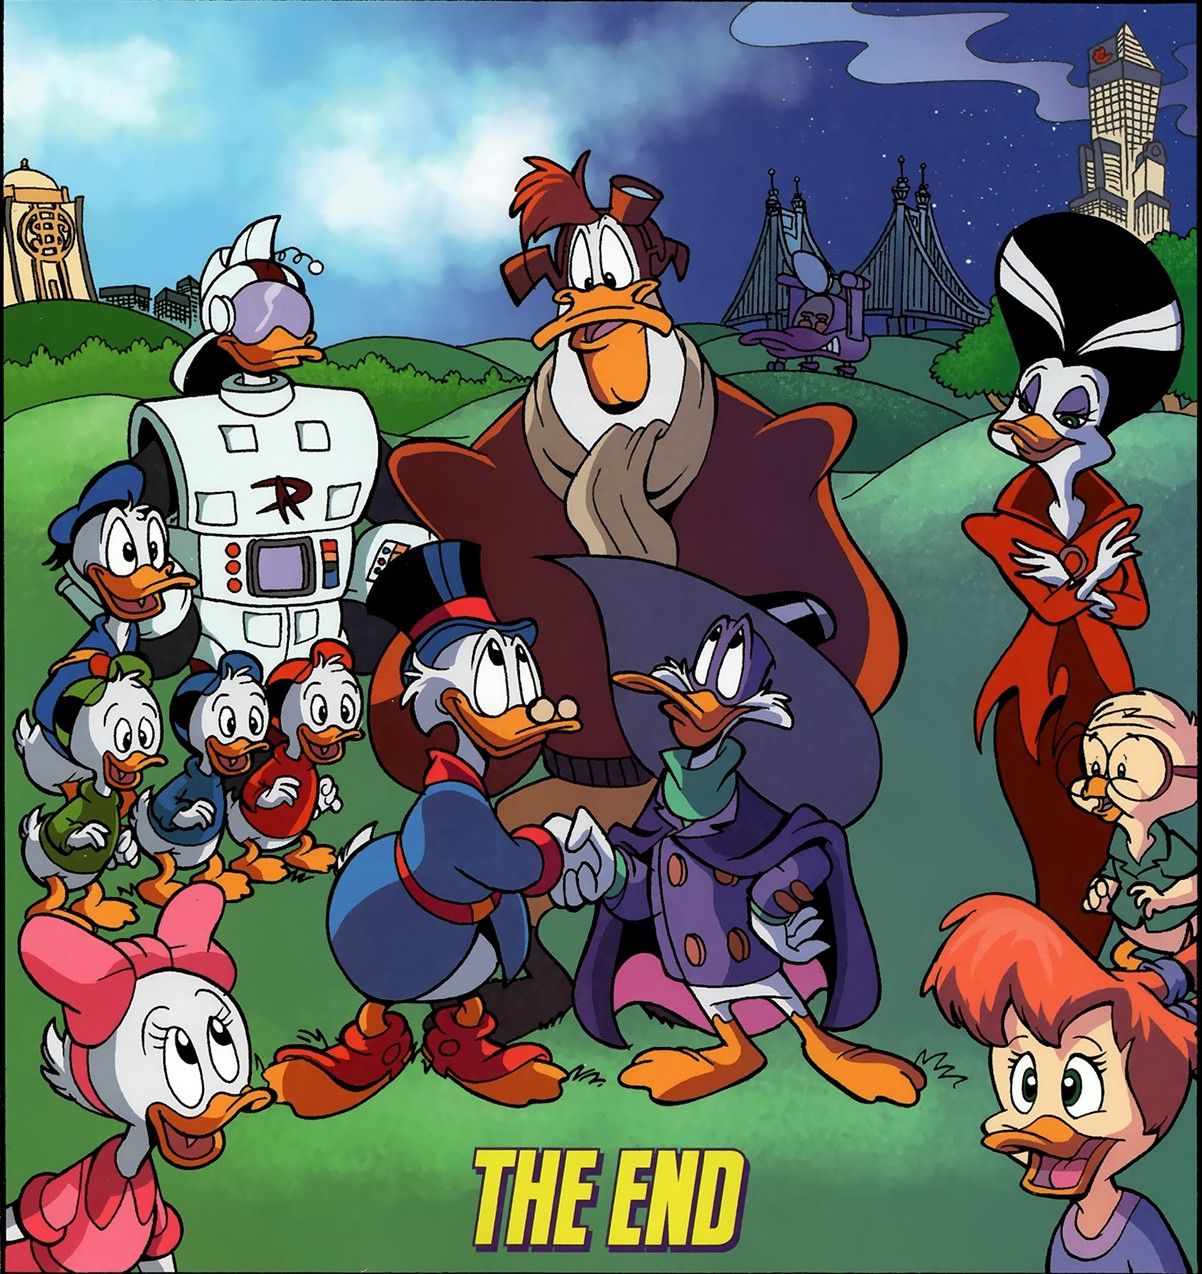 comic reviews from the lifeimpaired darkwing duck